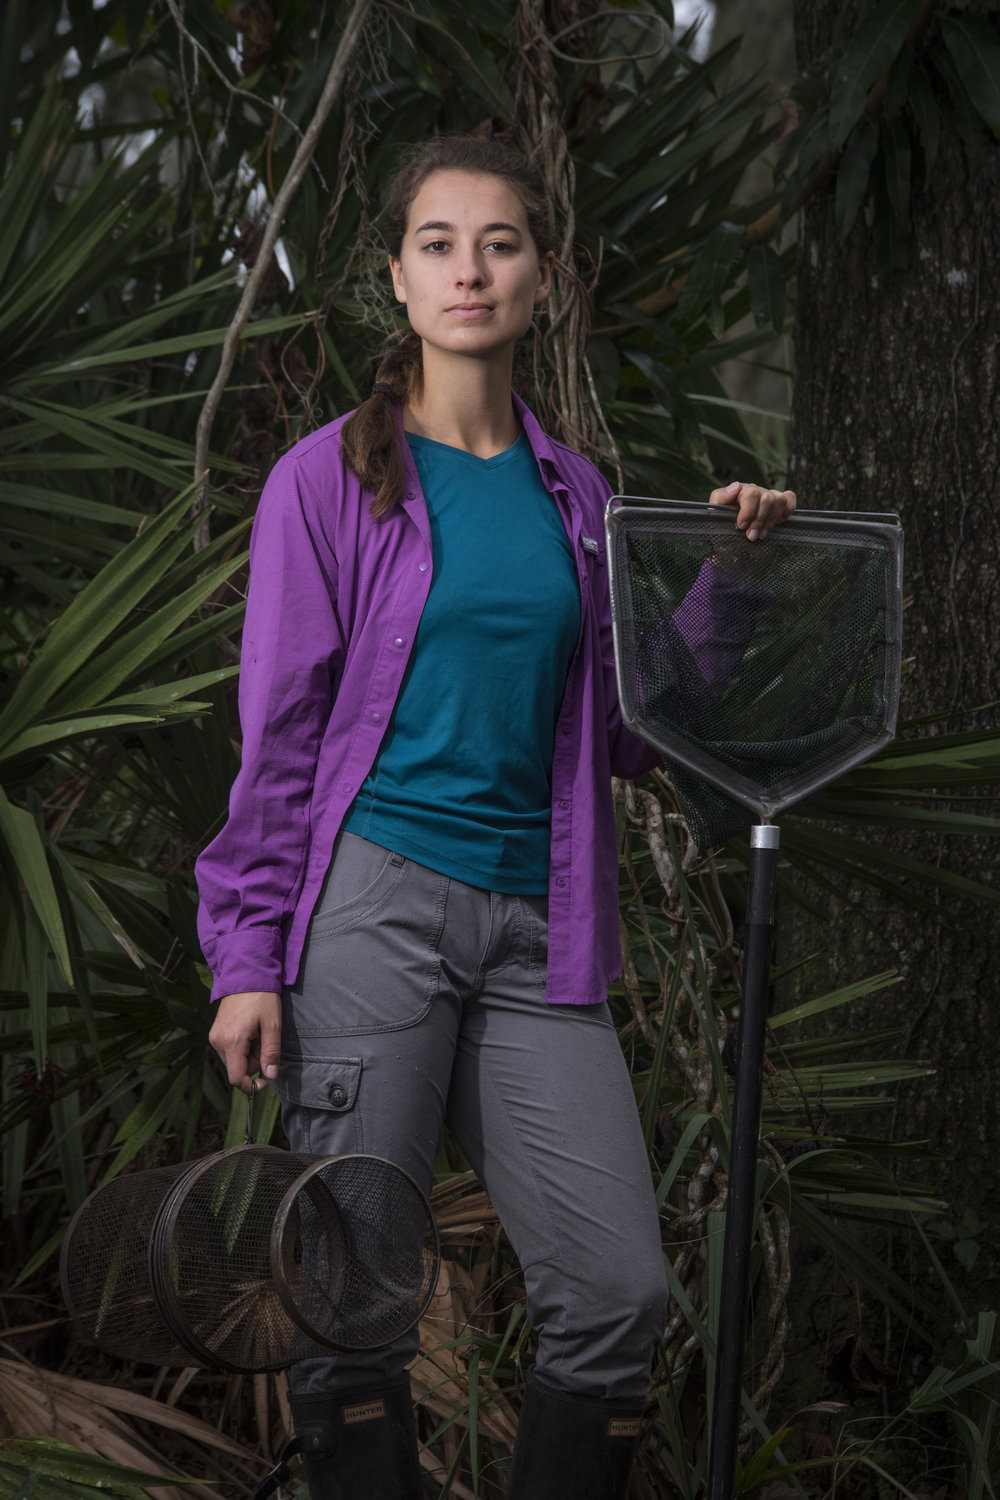 Madison Harman    Herpetology Research Intern   Archbold Biological Station  2018/12/20